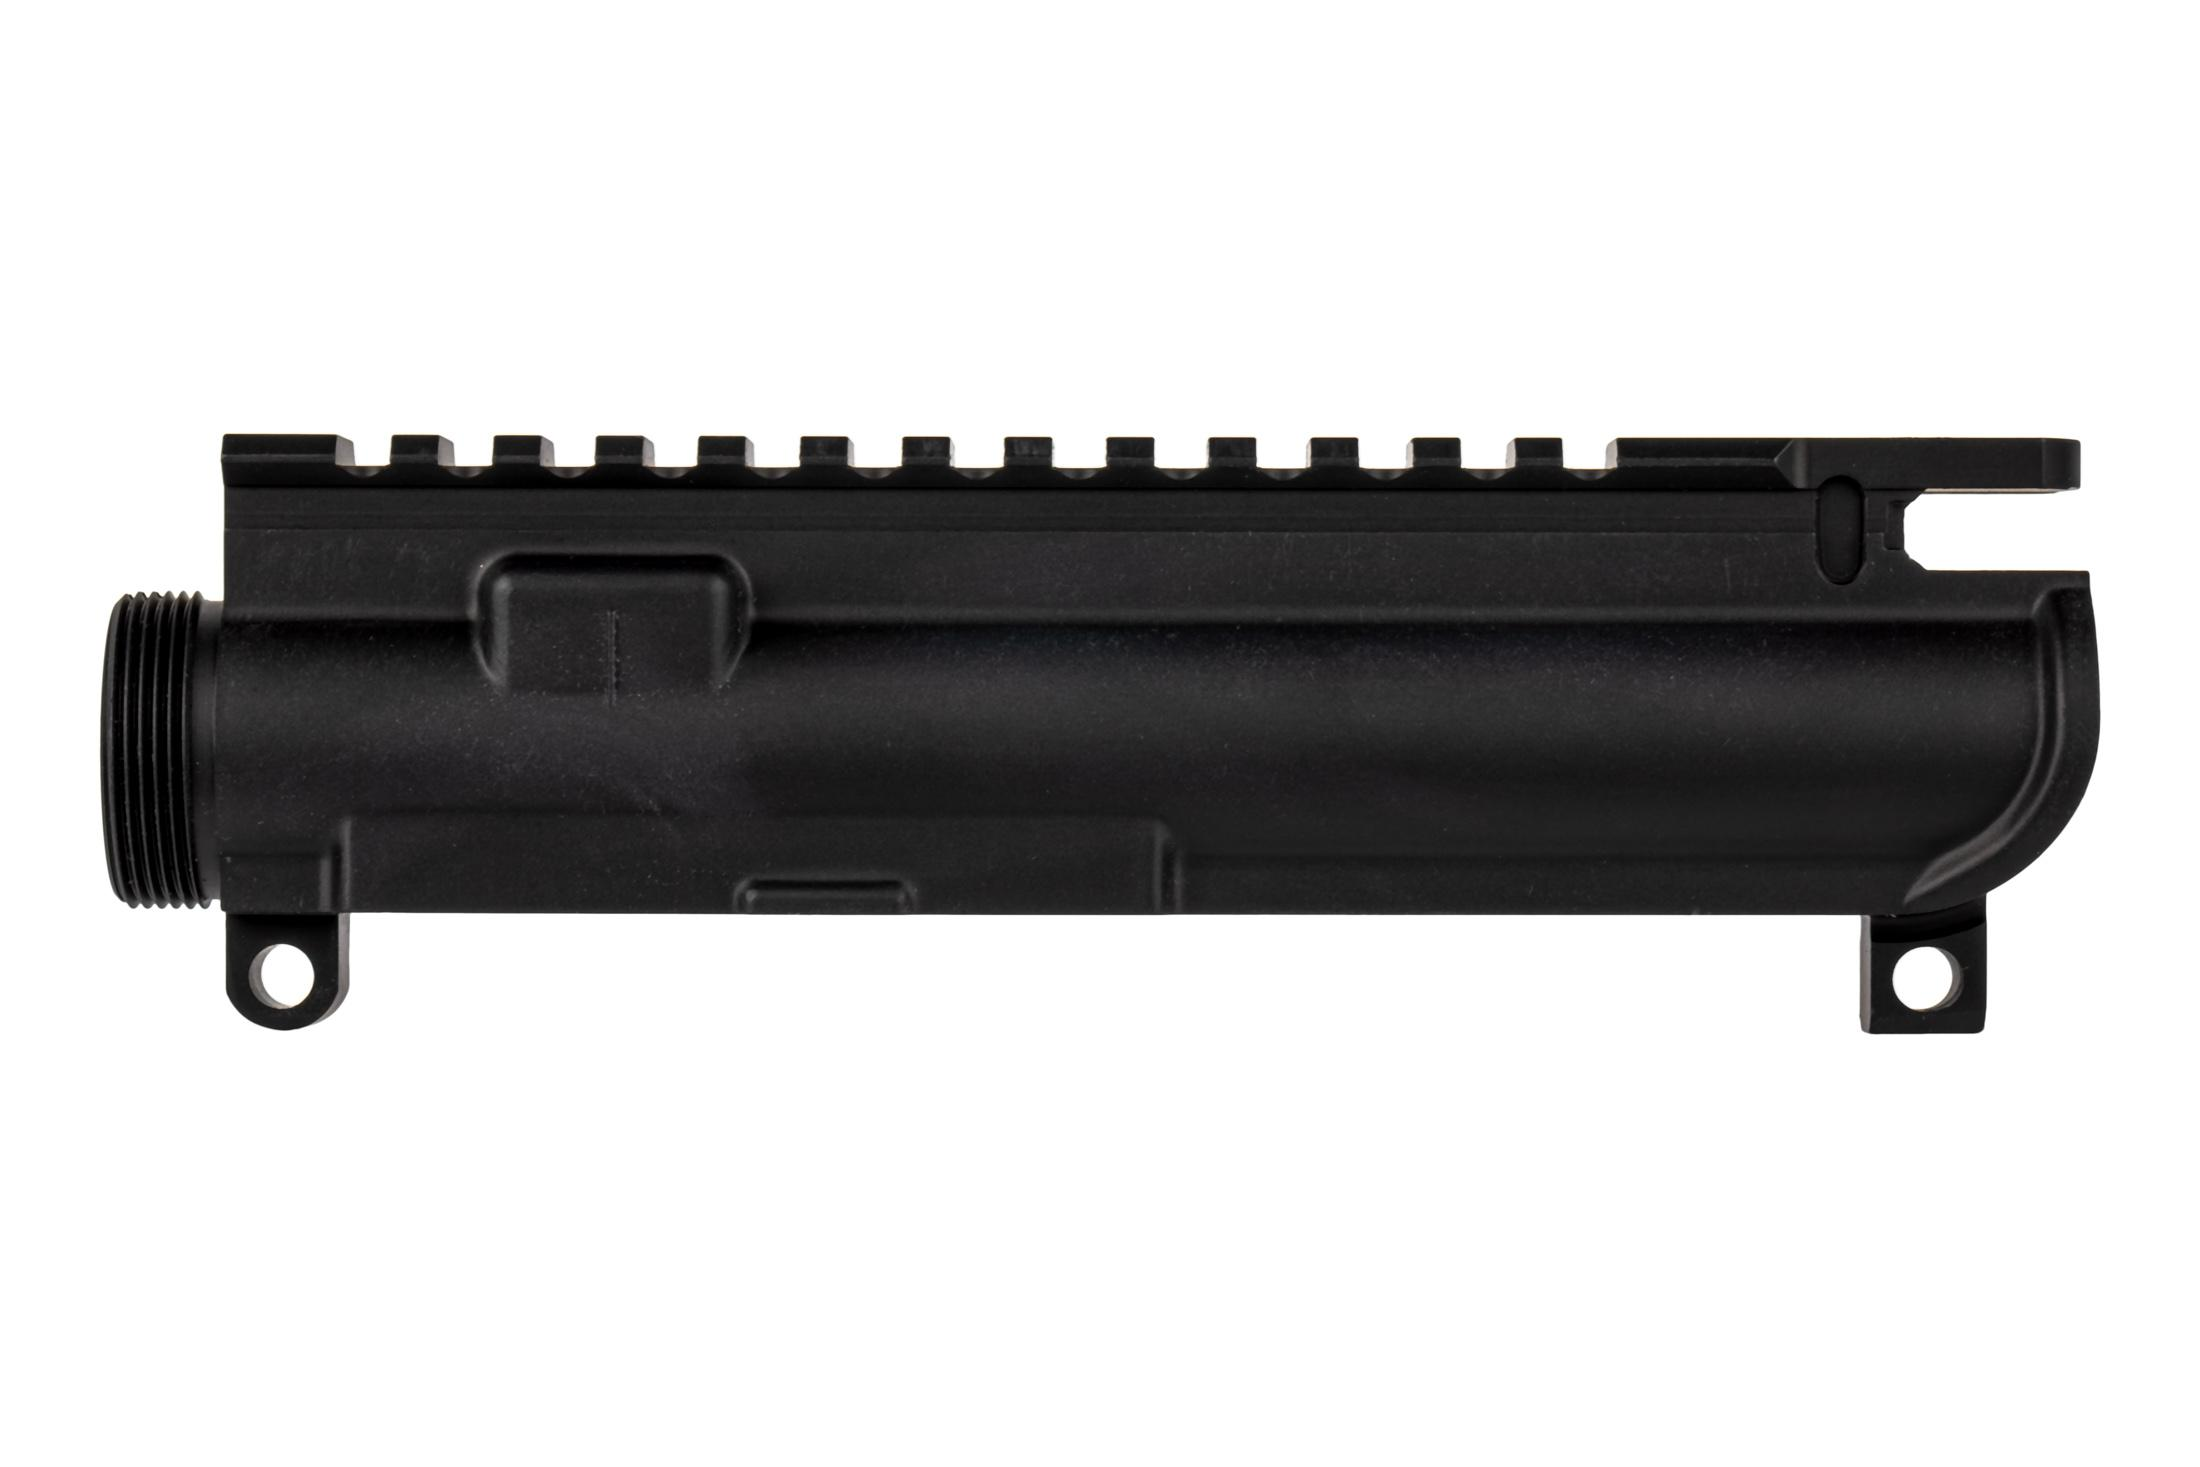 BCA stripped MIL-SPEC AR 15 upper receiver accepts standard components and accessories.